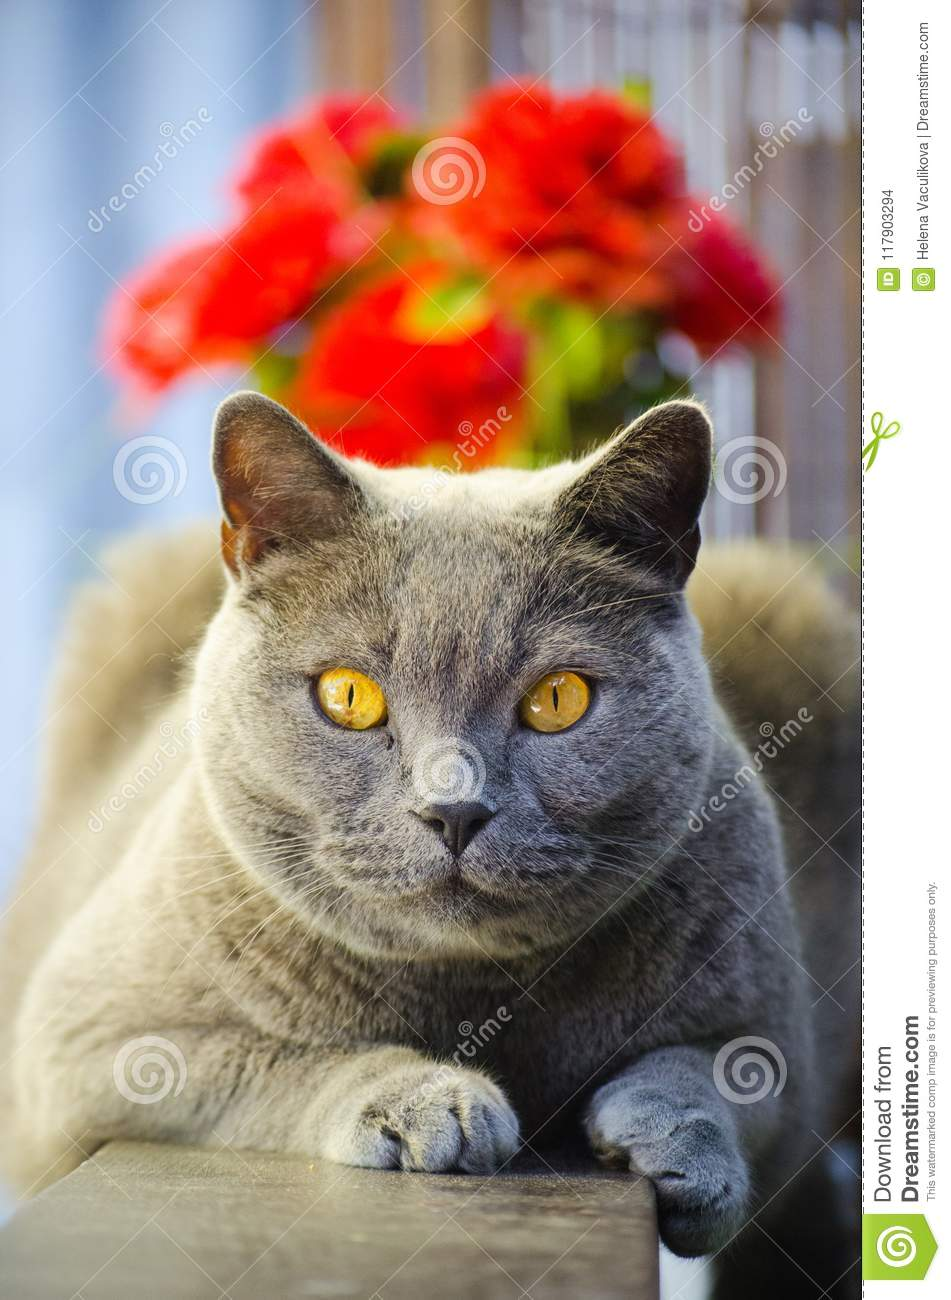 Download British Shorthair Cat stock photo. Image of body, breeds - 117903294